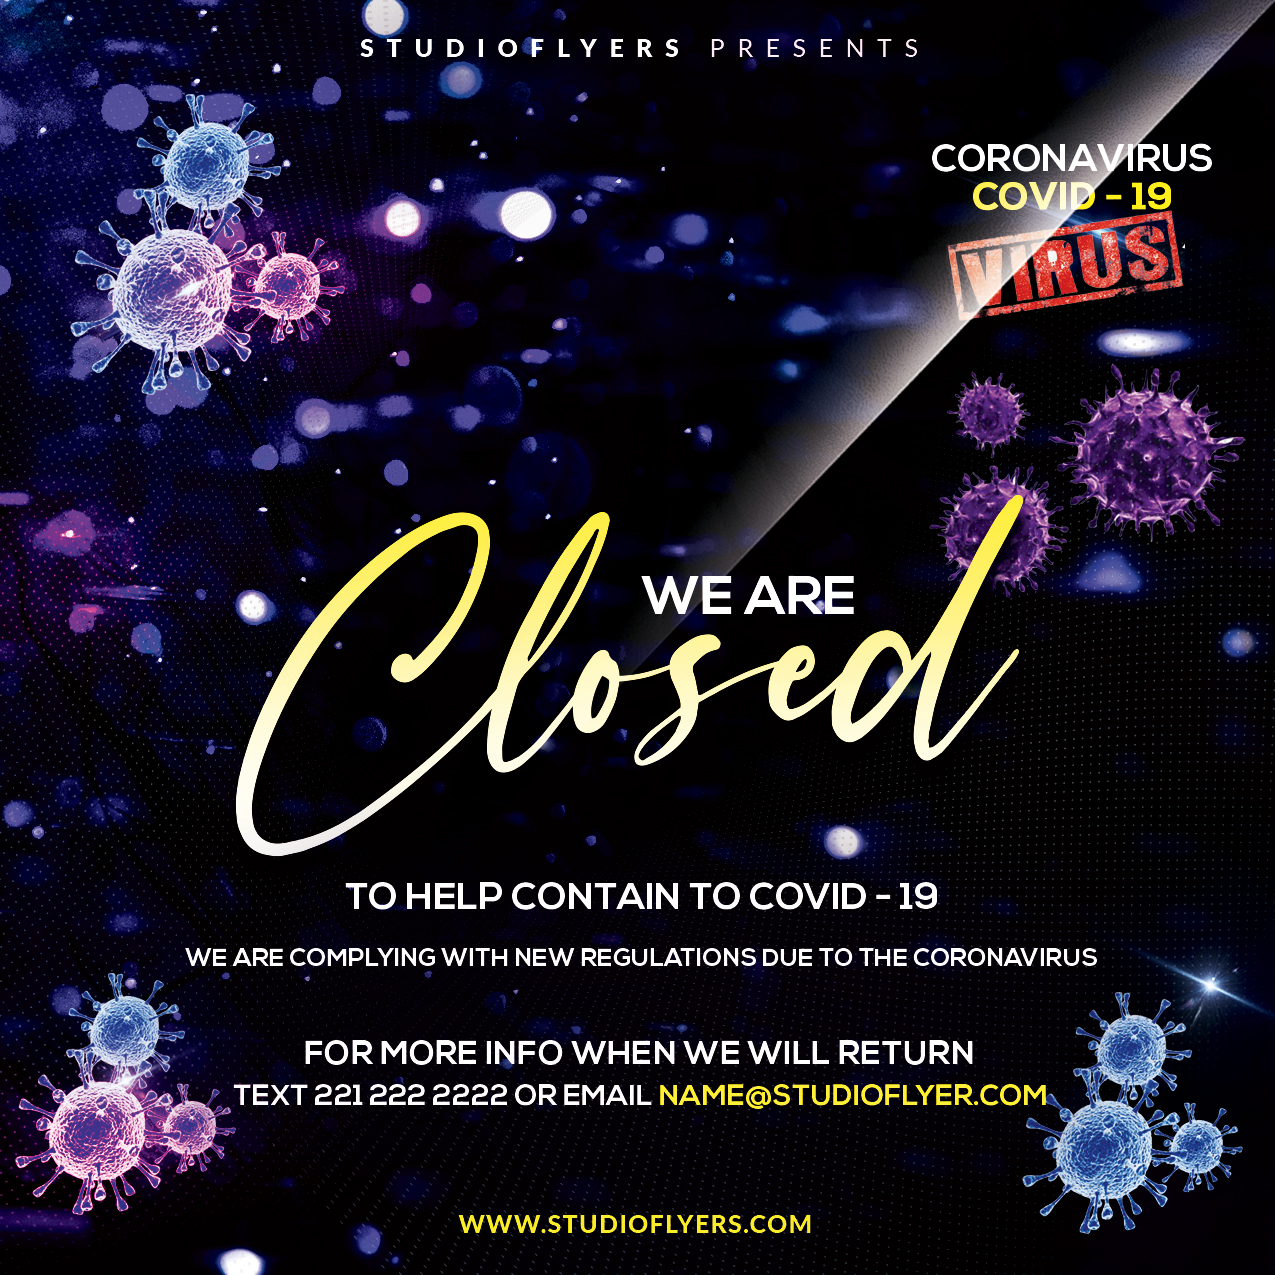 Covid-19 Closed Club - Free PSD Flyer Template